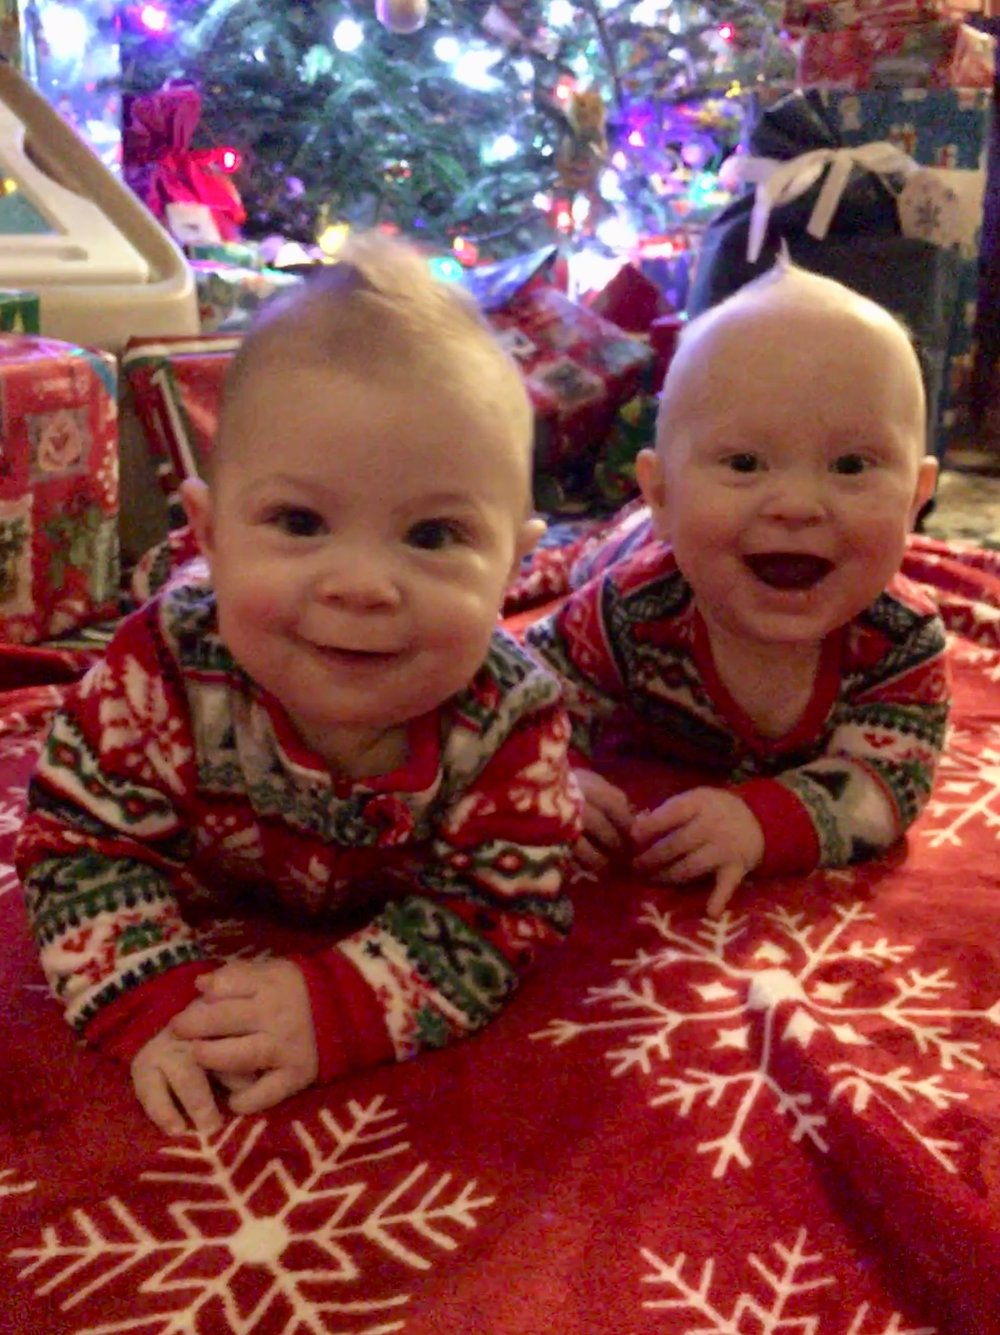 Ryker & Reece on Christmas morning